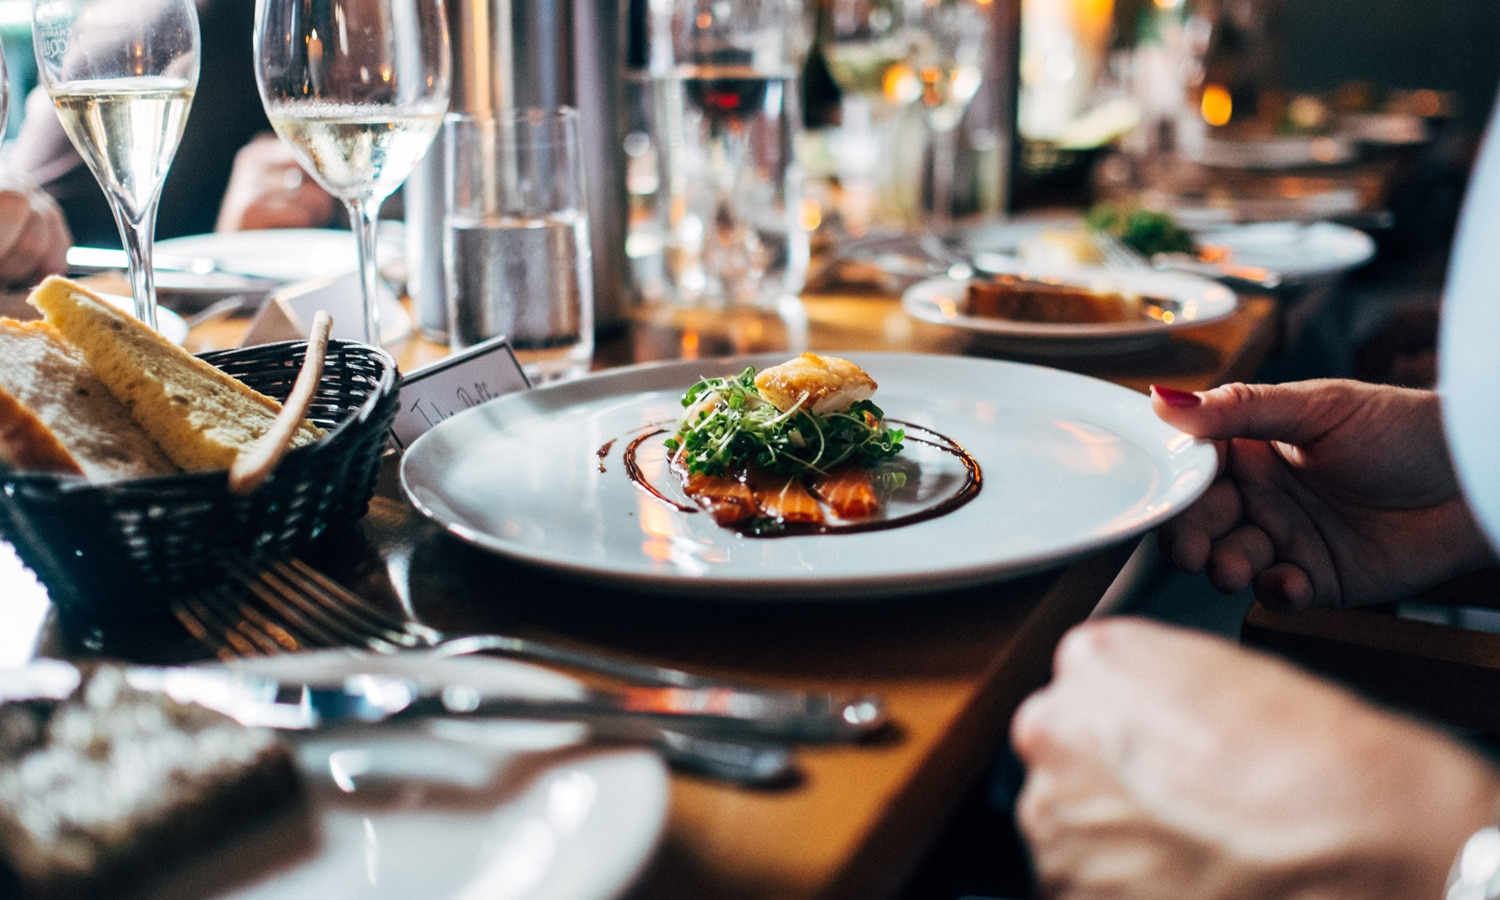 How To Stay Safe While Eating Out At A Restaurant